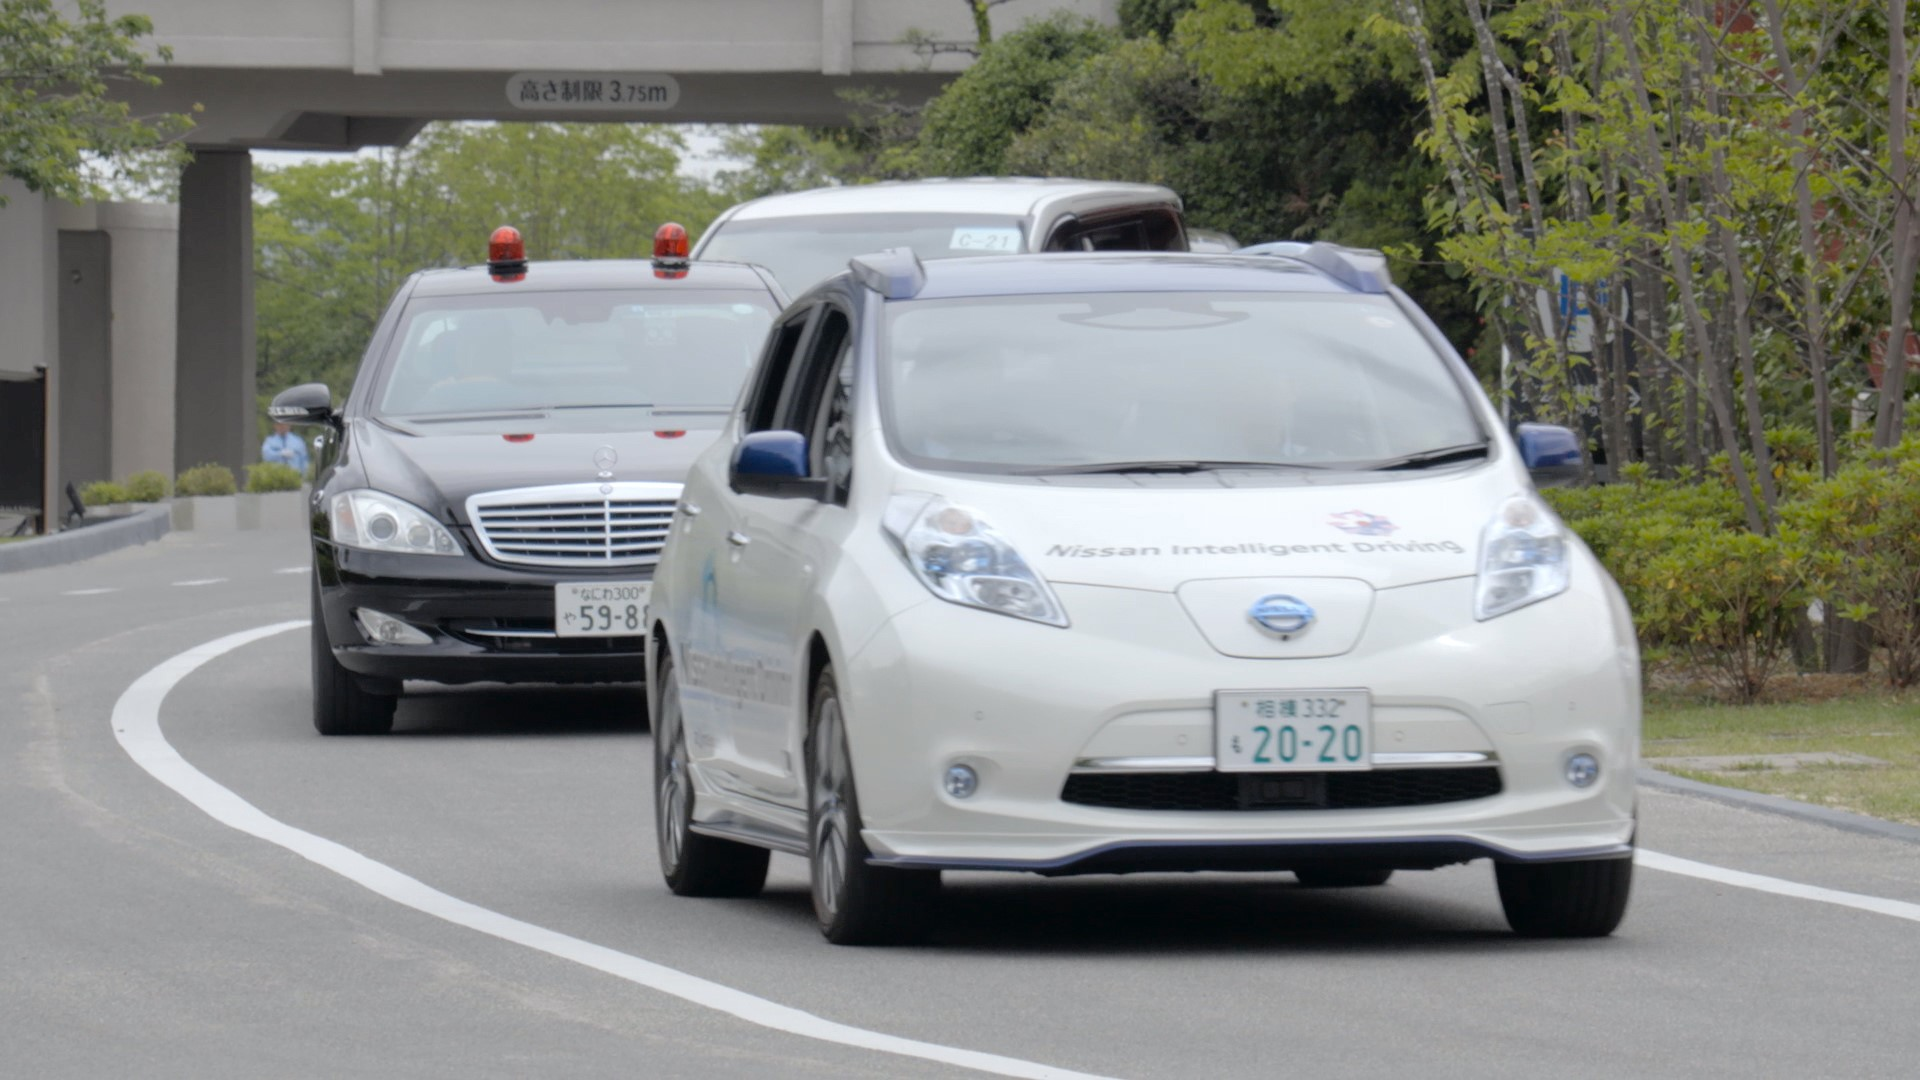 Nissan ProPilot autonomous technology applied to a Nissan Leaf car, seen here at Ise-Shima G7 Summit